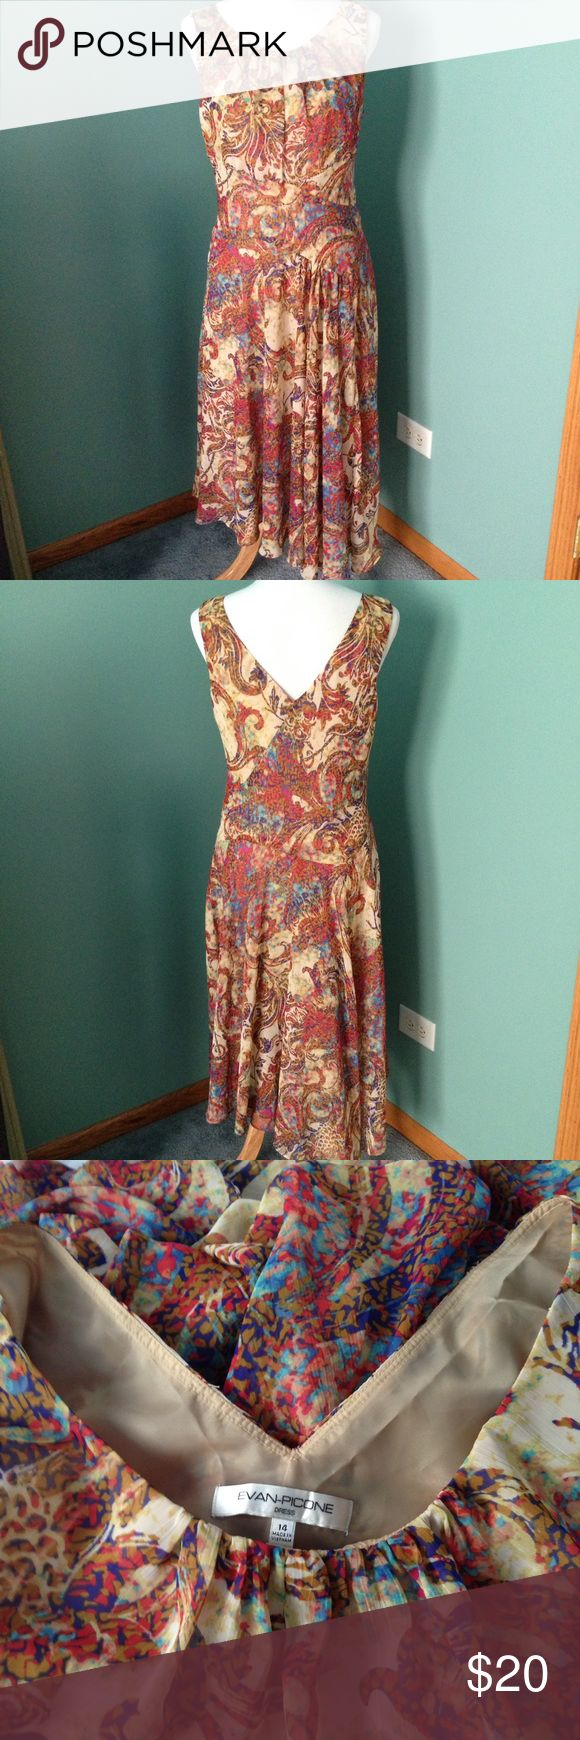 """Evan-Picone summer dress A beautiful, """"flowy"""" summer dress with crew neck front & V-shaped at the back. Size says 14 but mannequin is medium & it fits perfectly! Waist 17"""" flat, length hi-lo 46-54"""". In excellent condition Evan Picone Dresses High Low"""